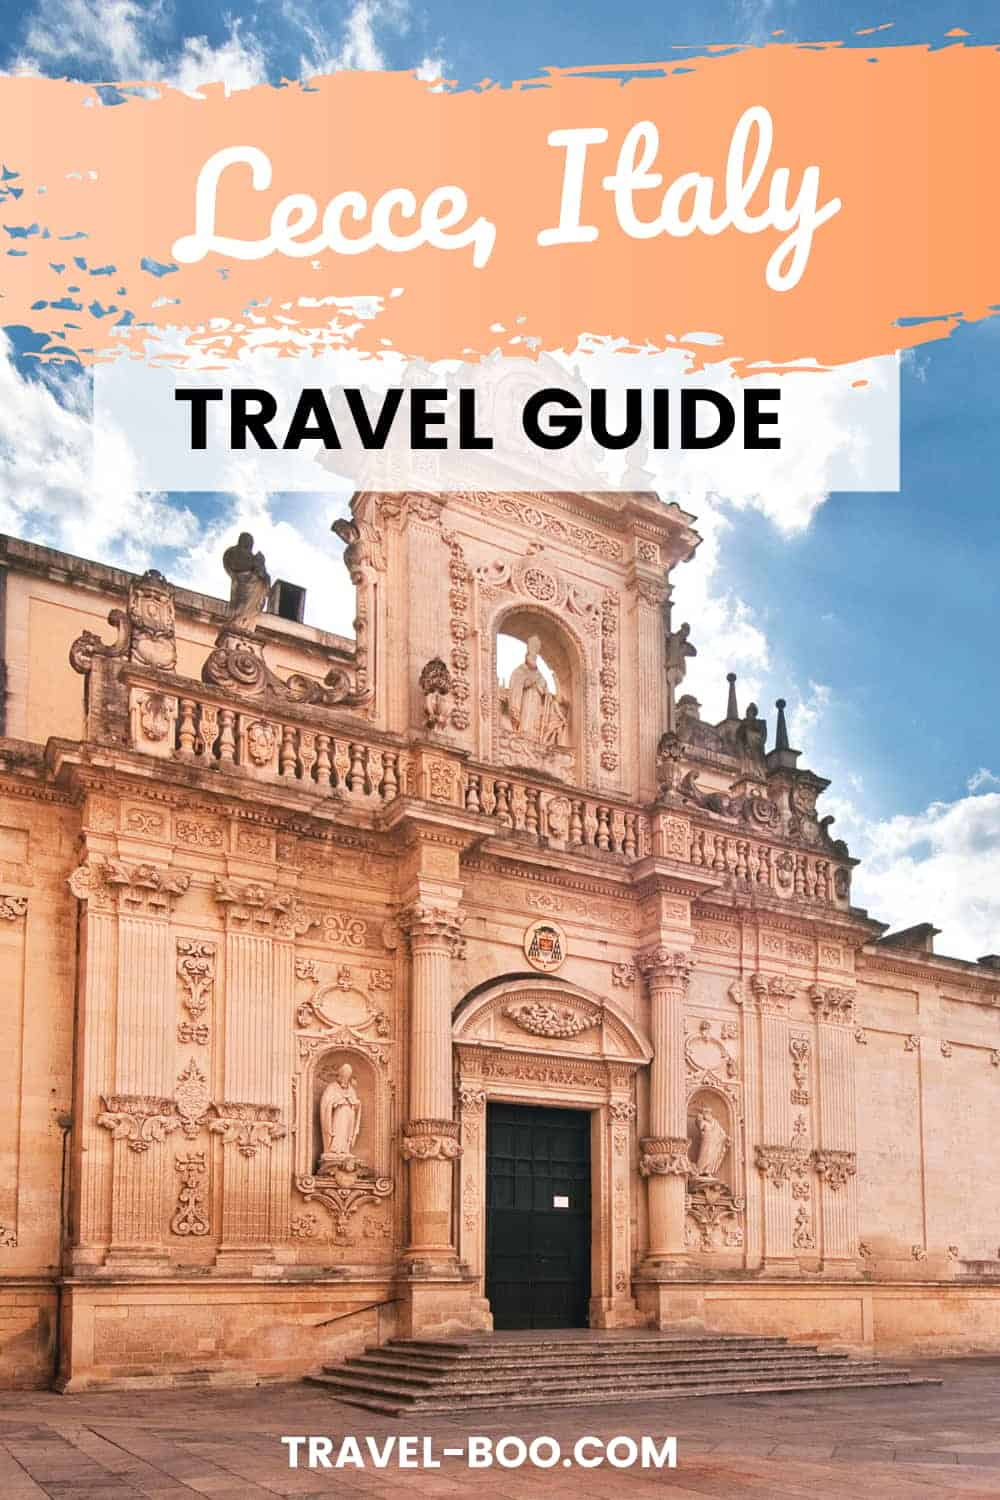 Visiting Puglia in Italy? Then don't miss out on gorgeous Lecce! In this Lecce travel guide I outline all you need to know to help plan your perfect trip to Lecce. Italy Travel, Italy Travel Guide, Italy Travel Destinations, Italy Travel Tips, Italy Travel Things to do, Lecce Italy, Lecce Travel. #lecce #leccetravel #italytravel #italytravelguide